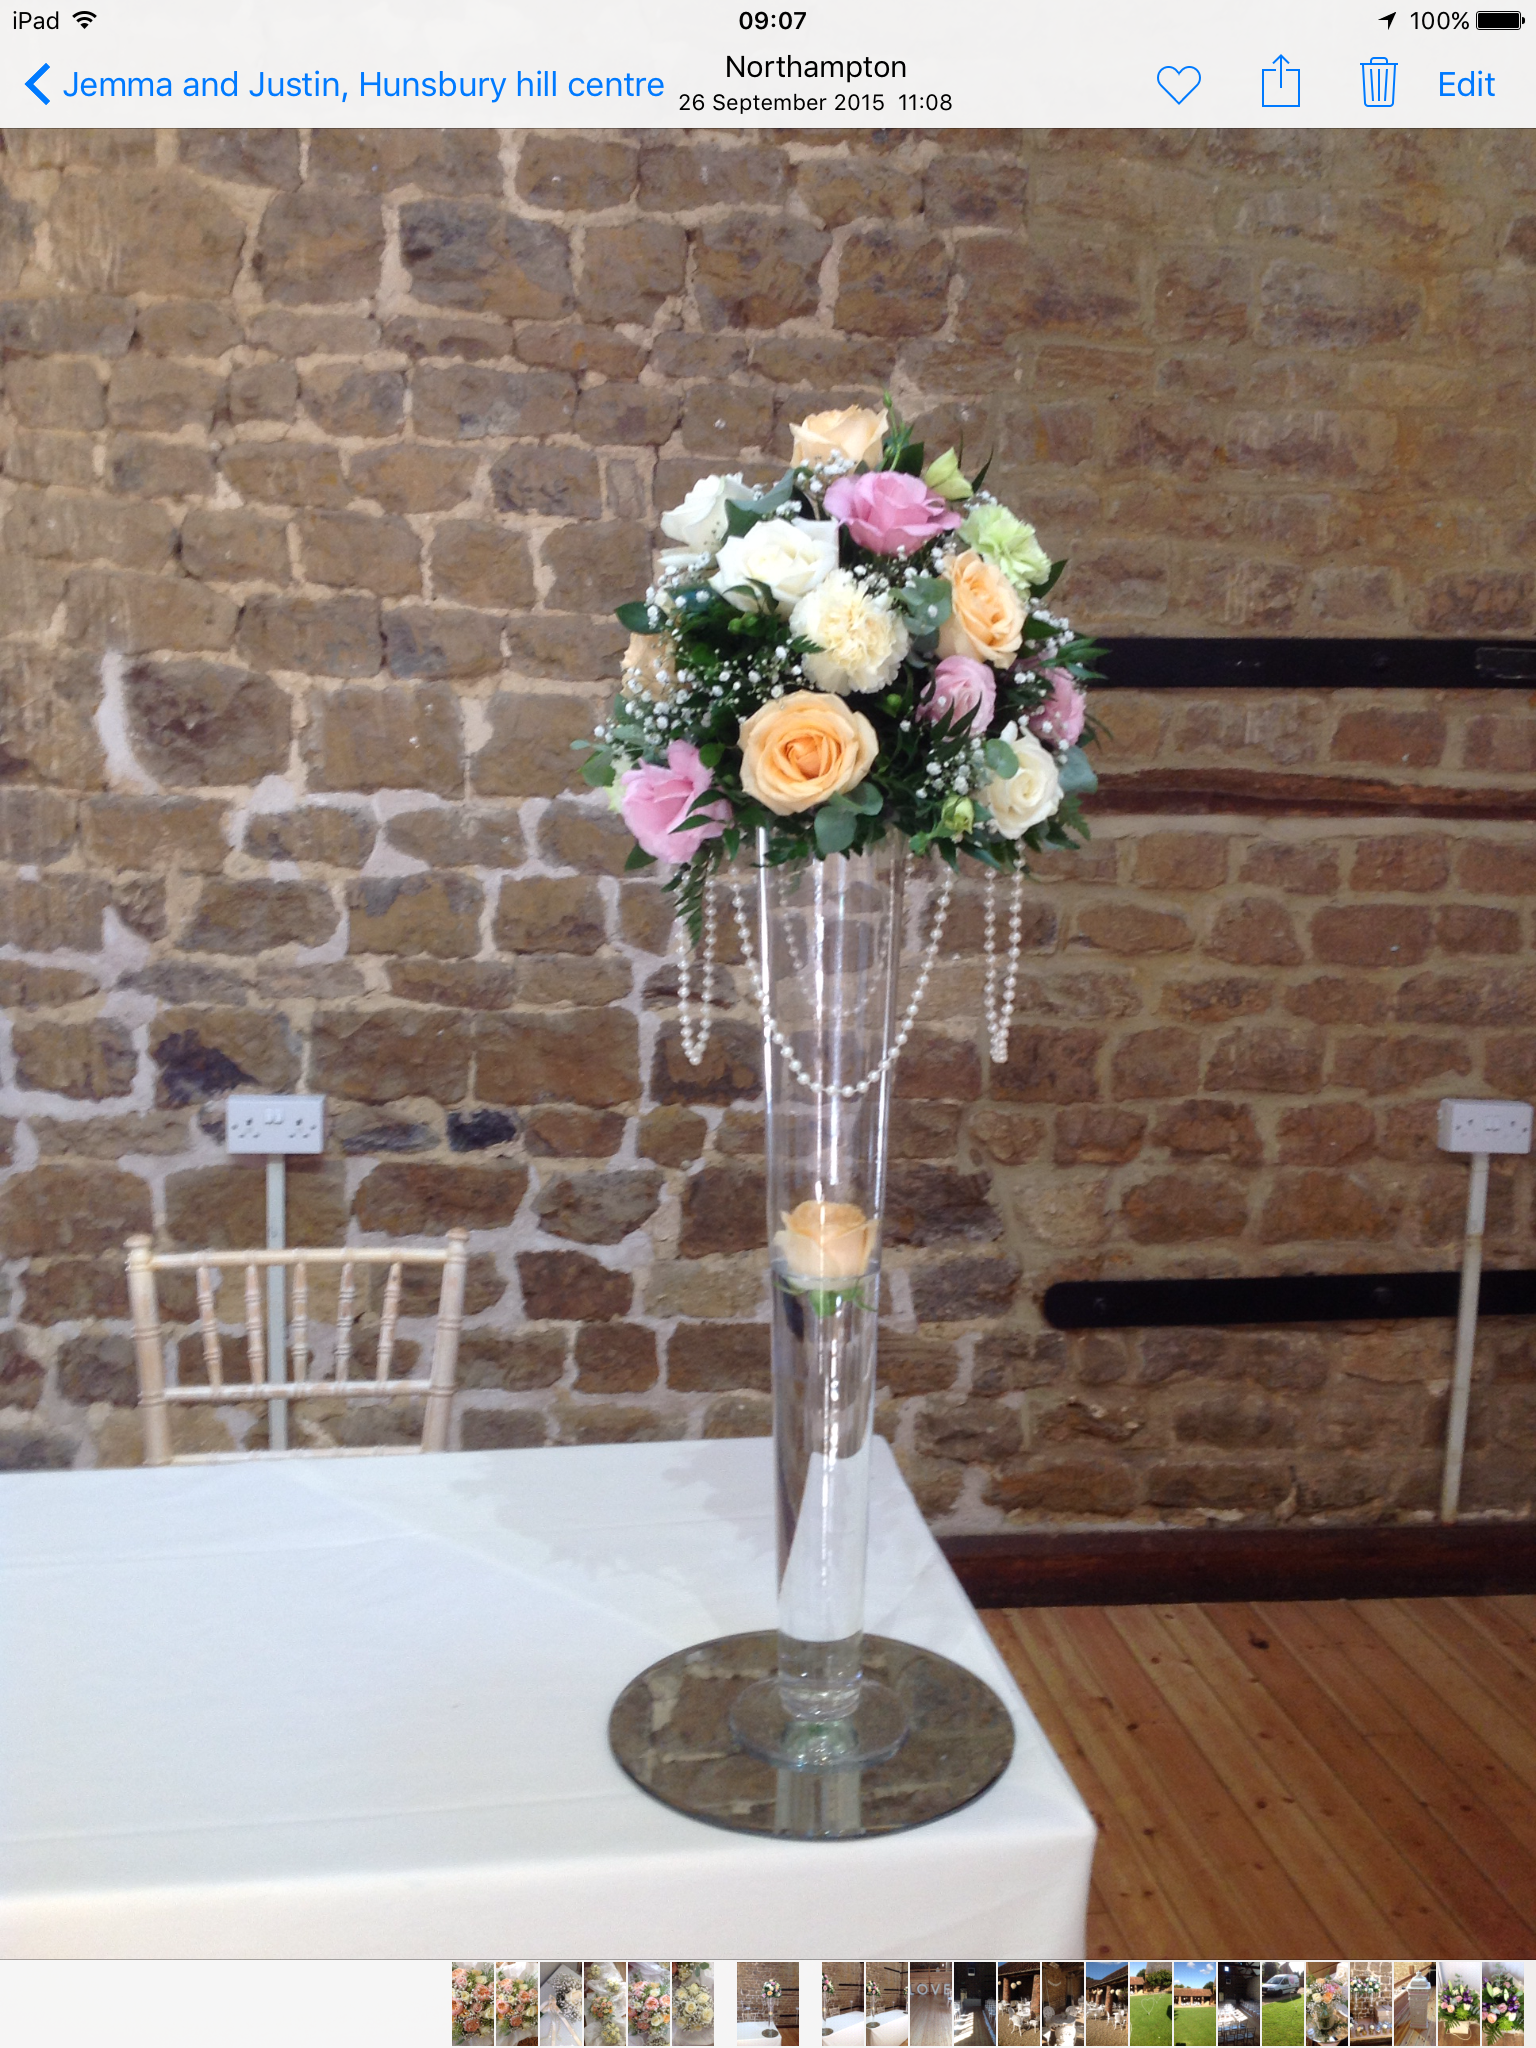 Pretty pastel arrangement on top of the tall conical vase the